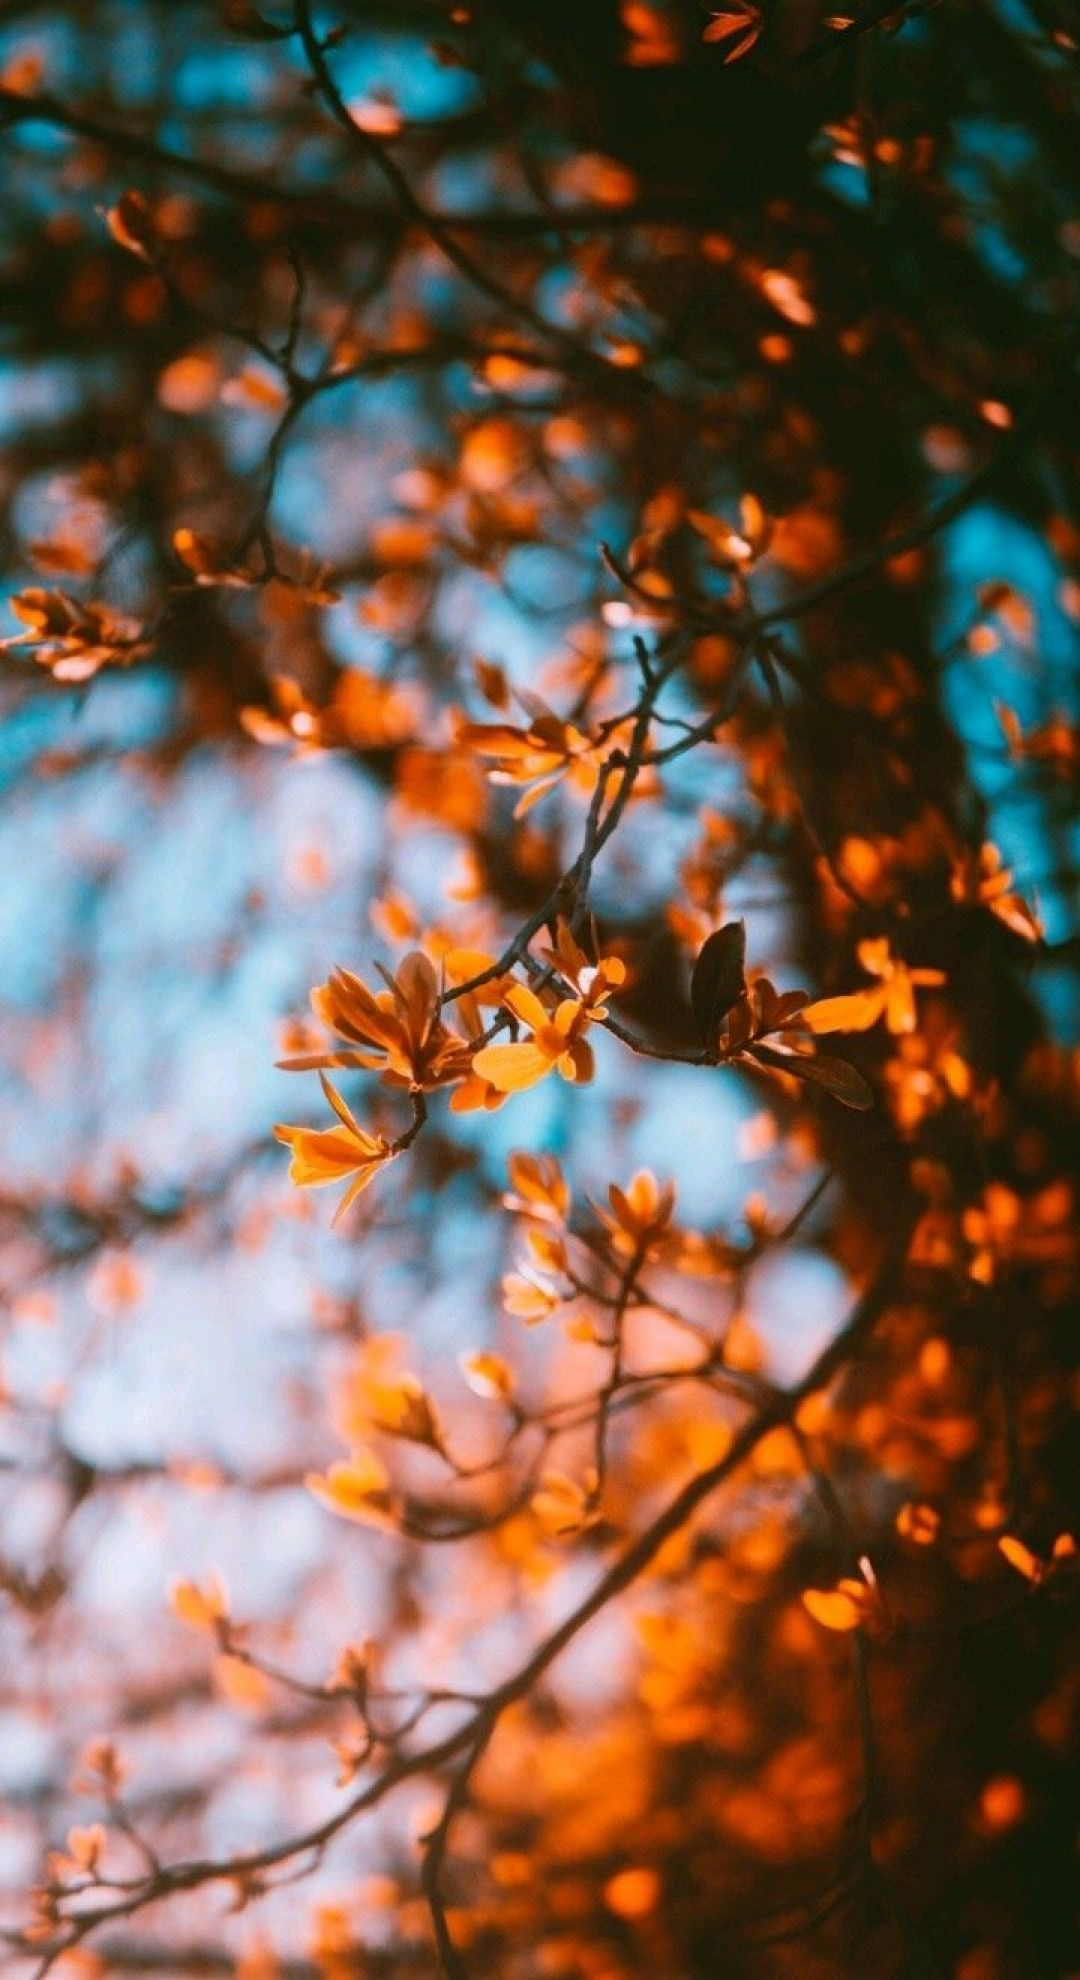 55 Hello Autumn Aesthetic Hd Wallpapers Desktop Background Android Iphone 1080p 4k 1080x1980 2020